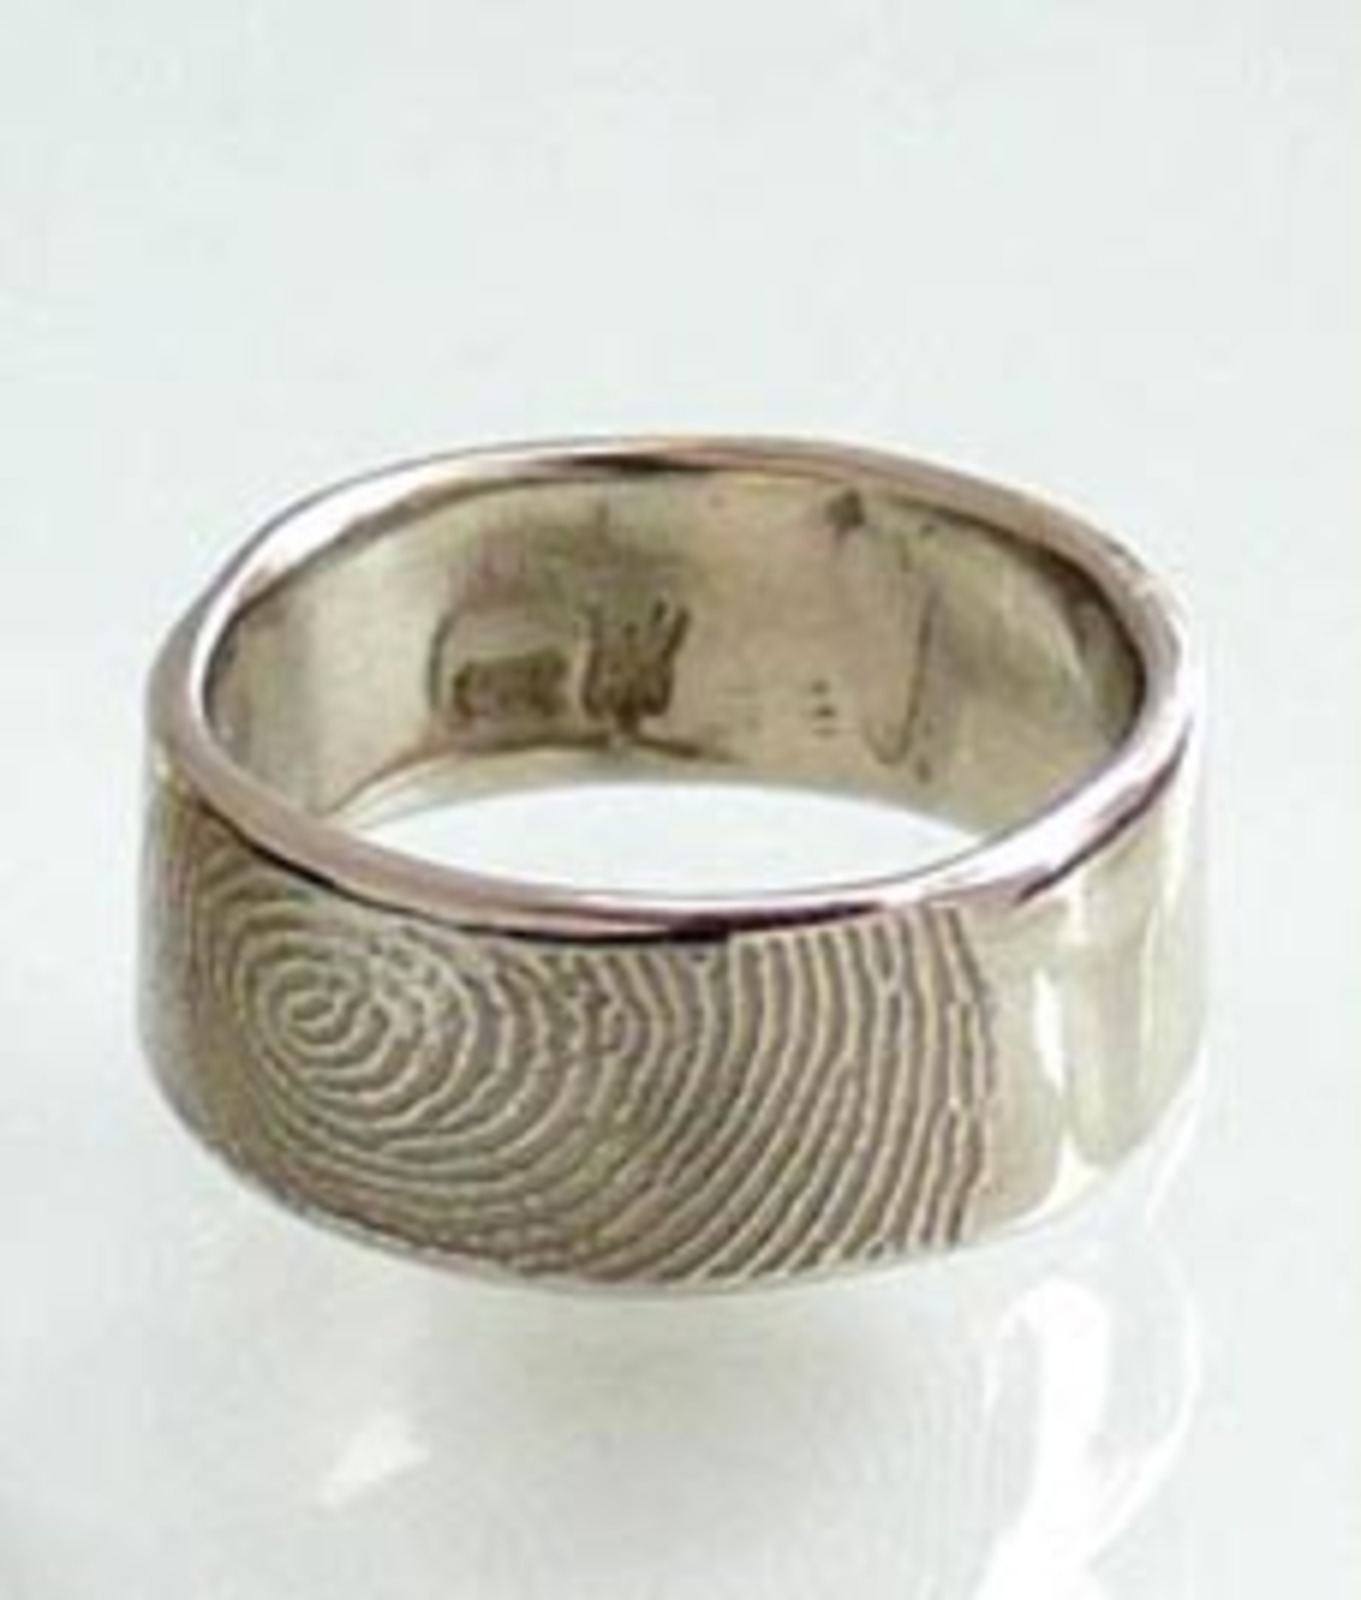 best pinterest s mens ring men silicone recon of bands on camo fingerprint rings images unique wedding